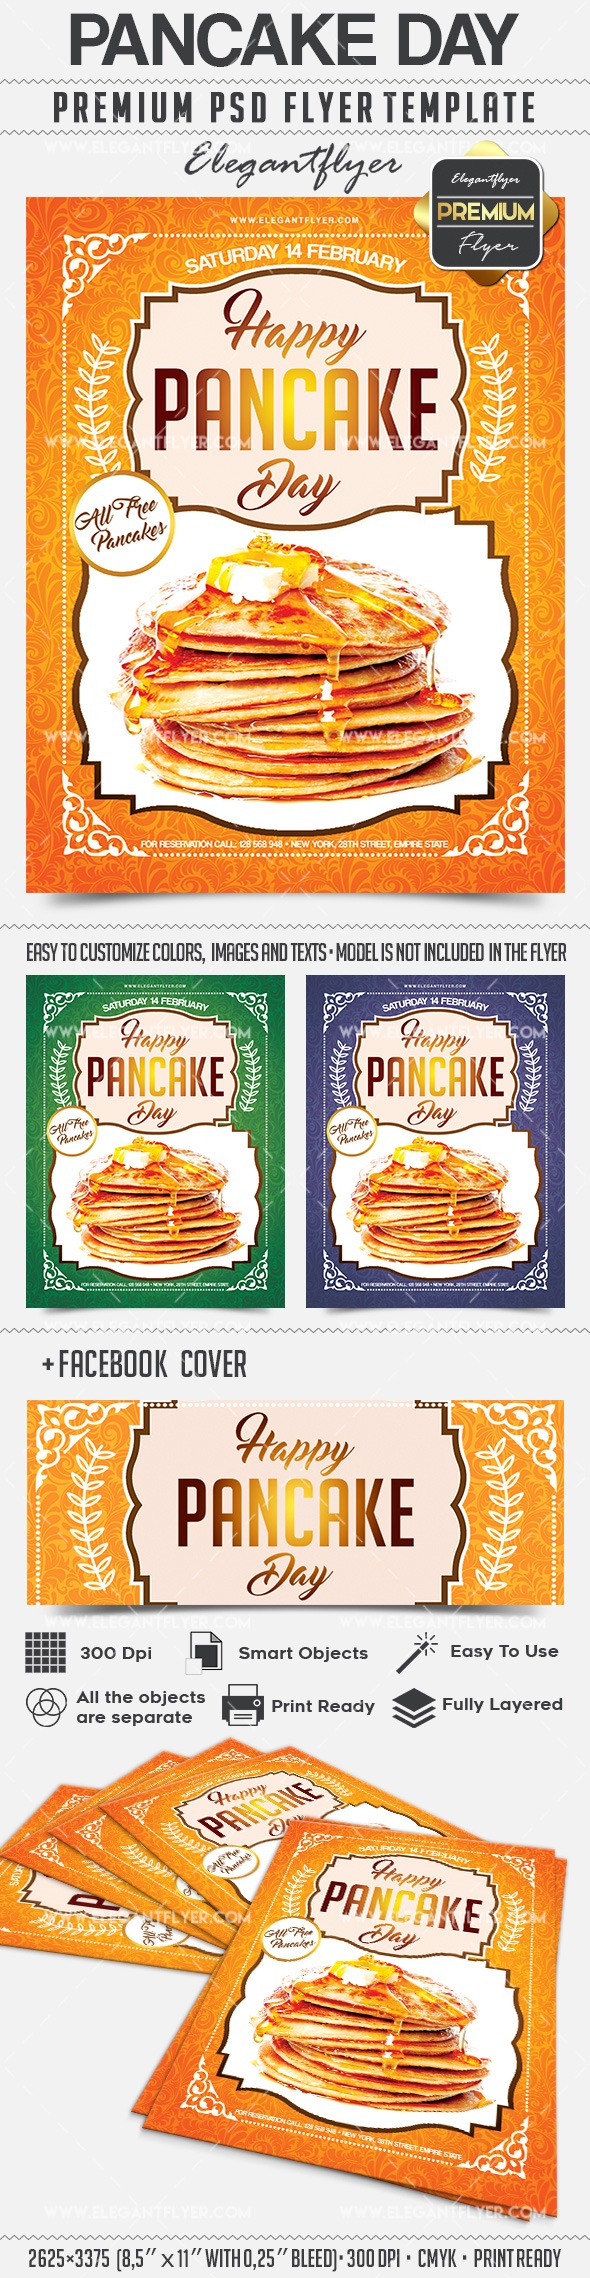 pancake day flyer psd template facebook cover by elegantflyer pancake day flyer psd template facebook cover